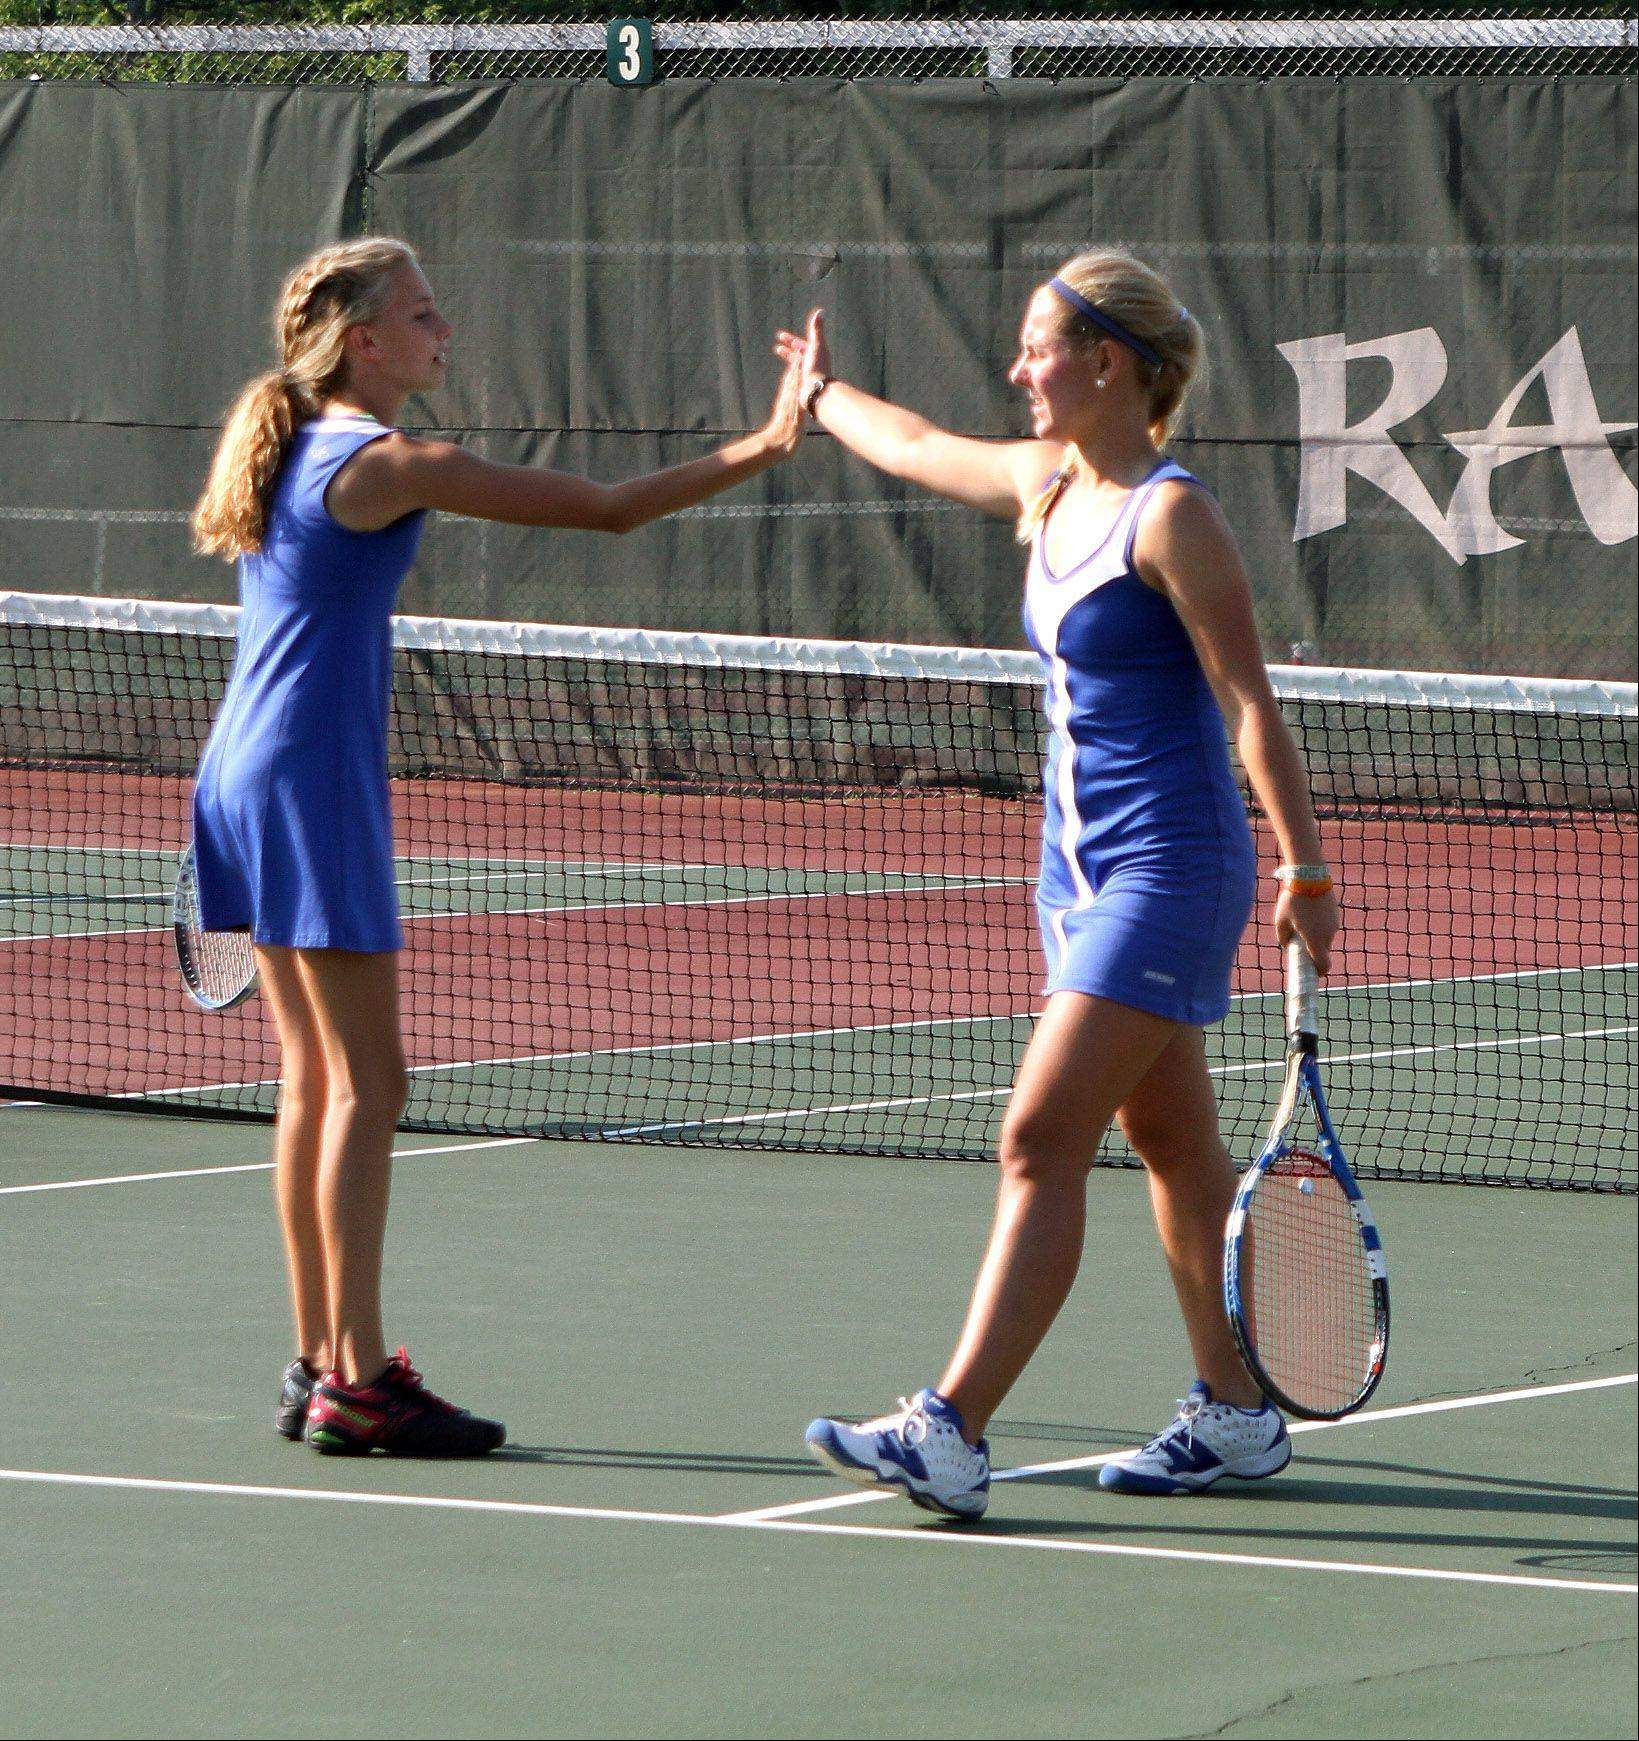 Liz Oprins, right, gives a high-five to her Glenbard South doubles partner Rachel Rettger during their match against Lake Park in girls tennis action on Monday in Glen Ellyn.